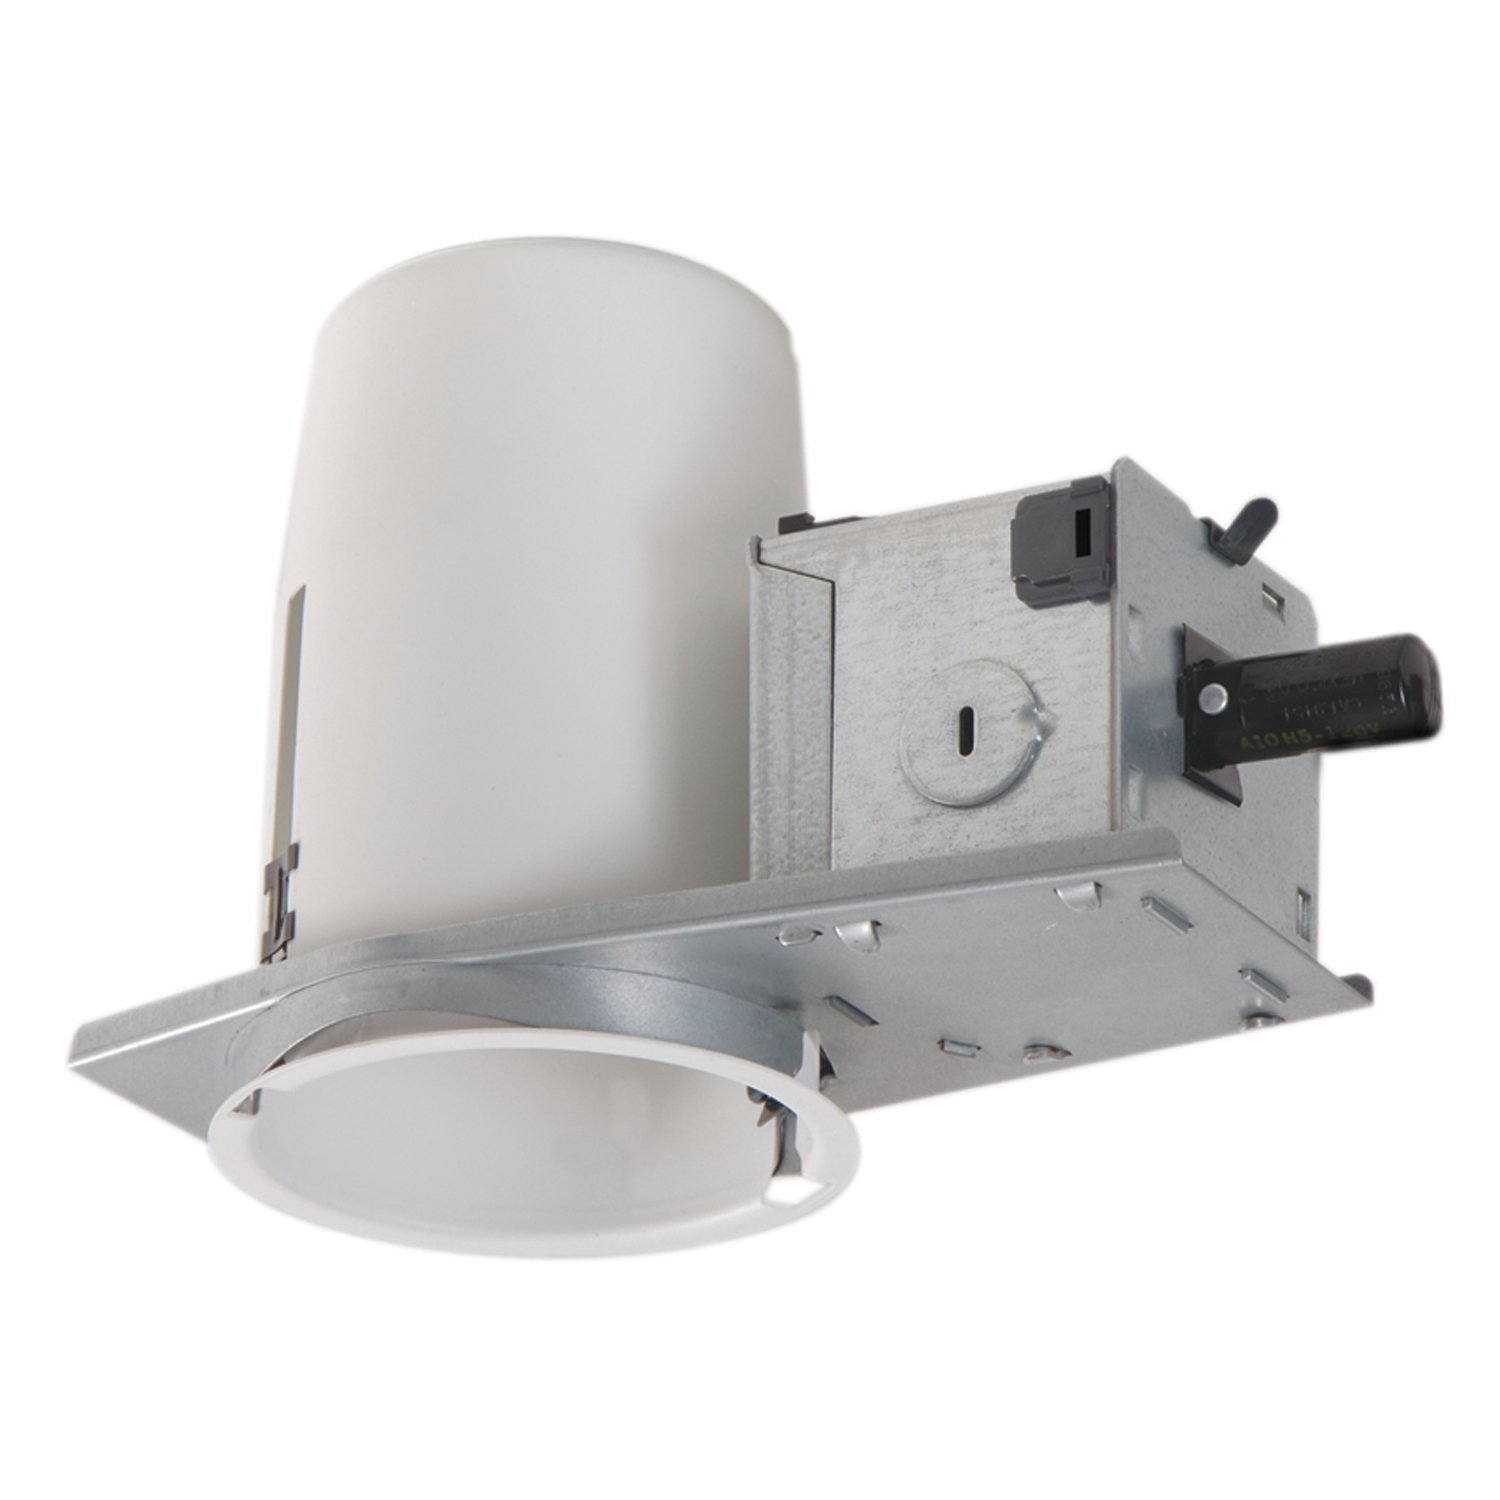 Halo Recessed H36RTAT 3-Inch Housing Non-Ic Air-Tite Shallow Ceiling 120-Volt Line Voltage